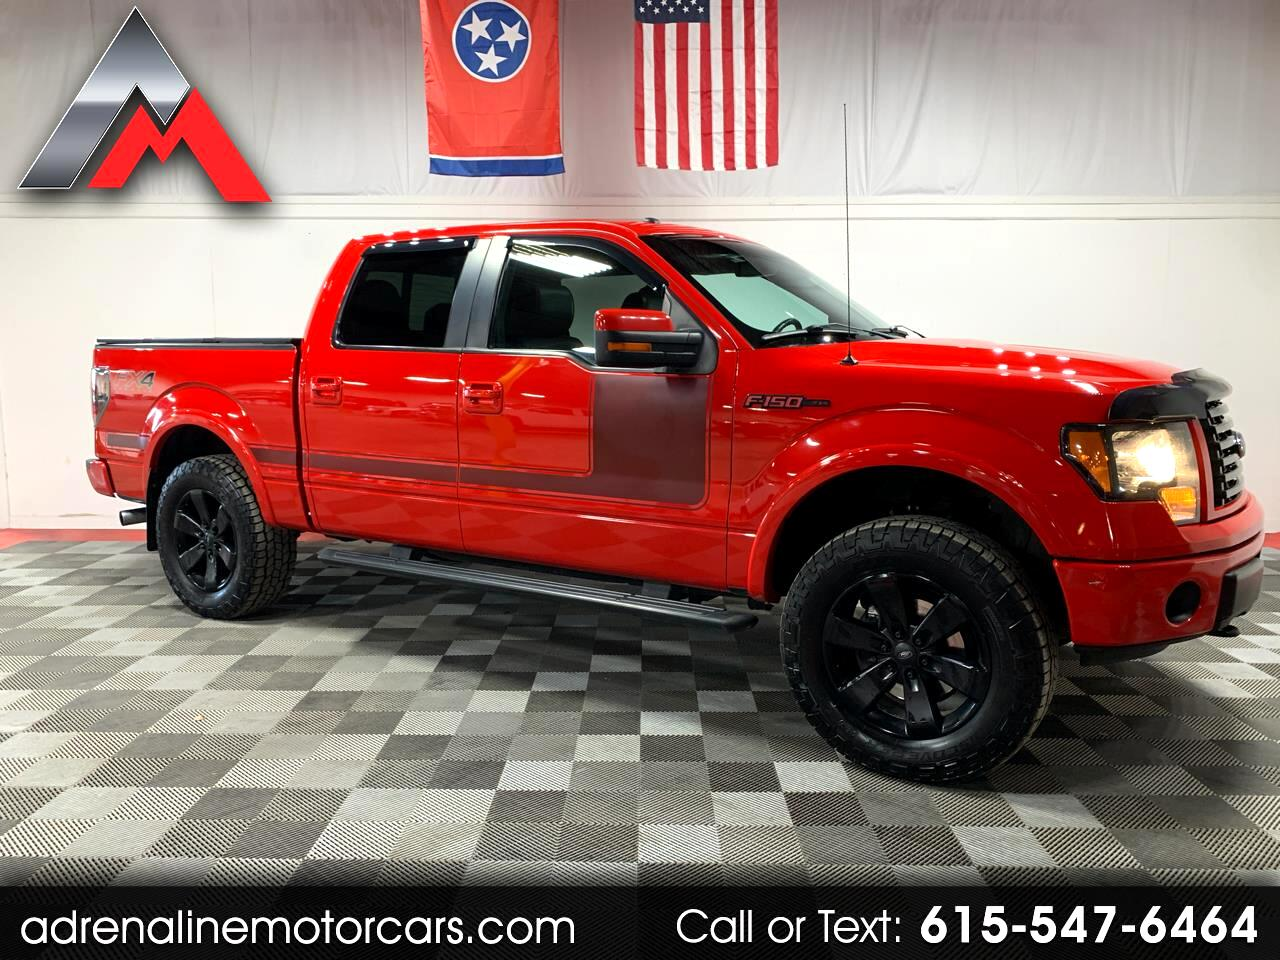 Ford F-150 FX4 4WD 2012